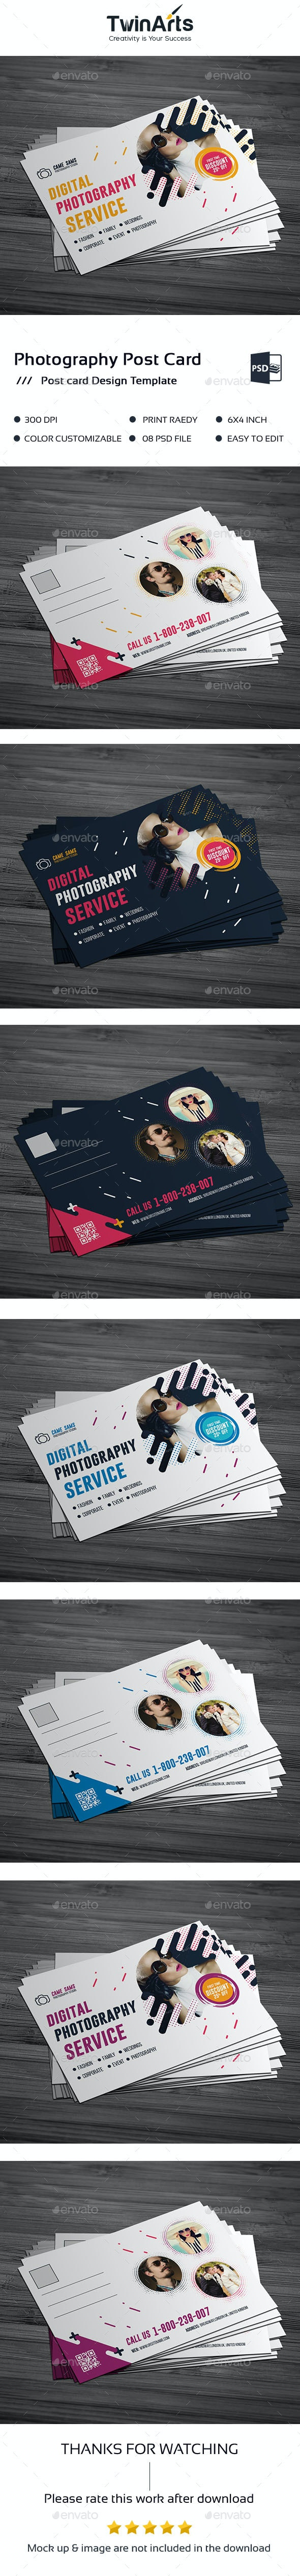 Photography Post Card Design - Cards & Invites Print Templates